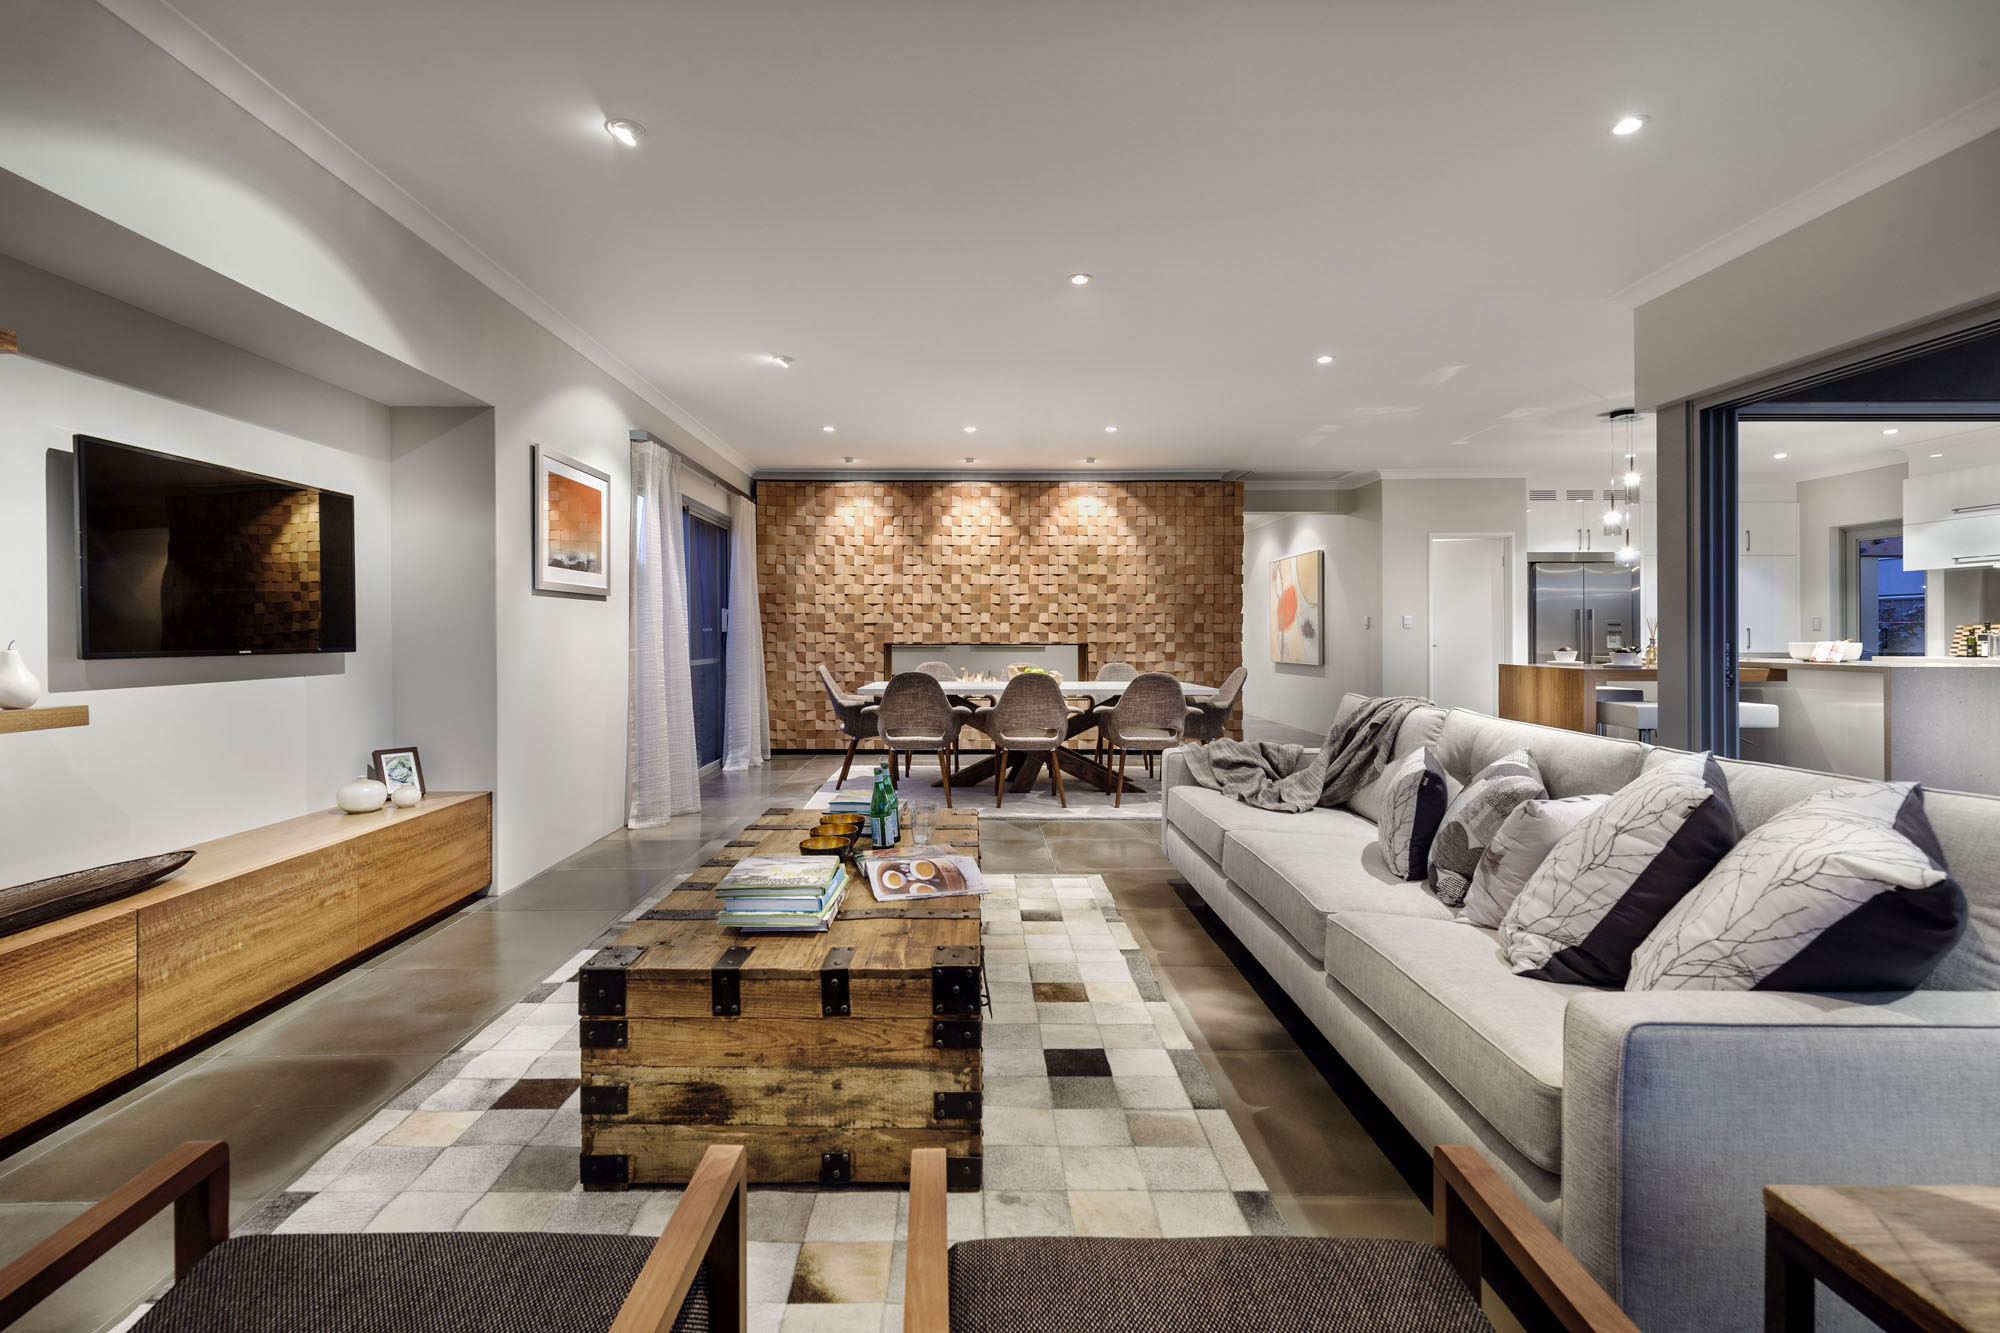 Stylish Modern Home in Wandi, Perth, Australia